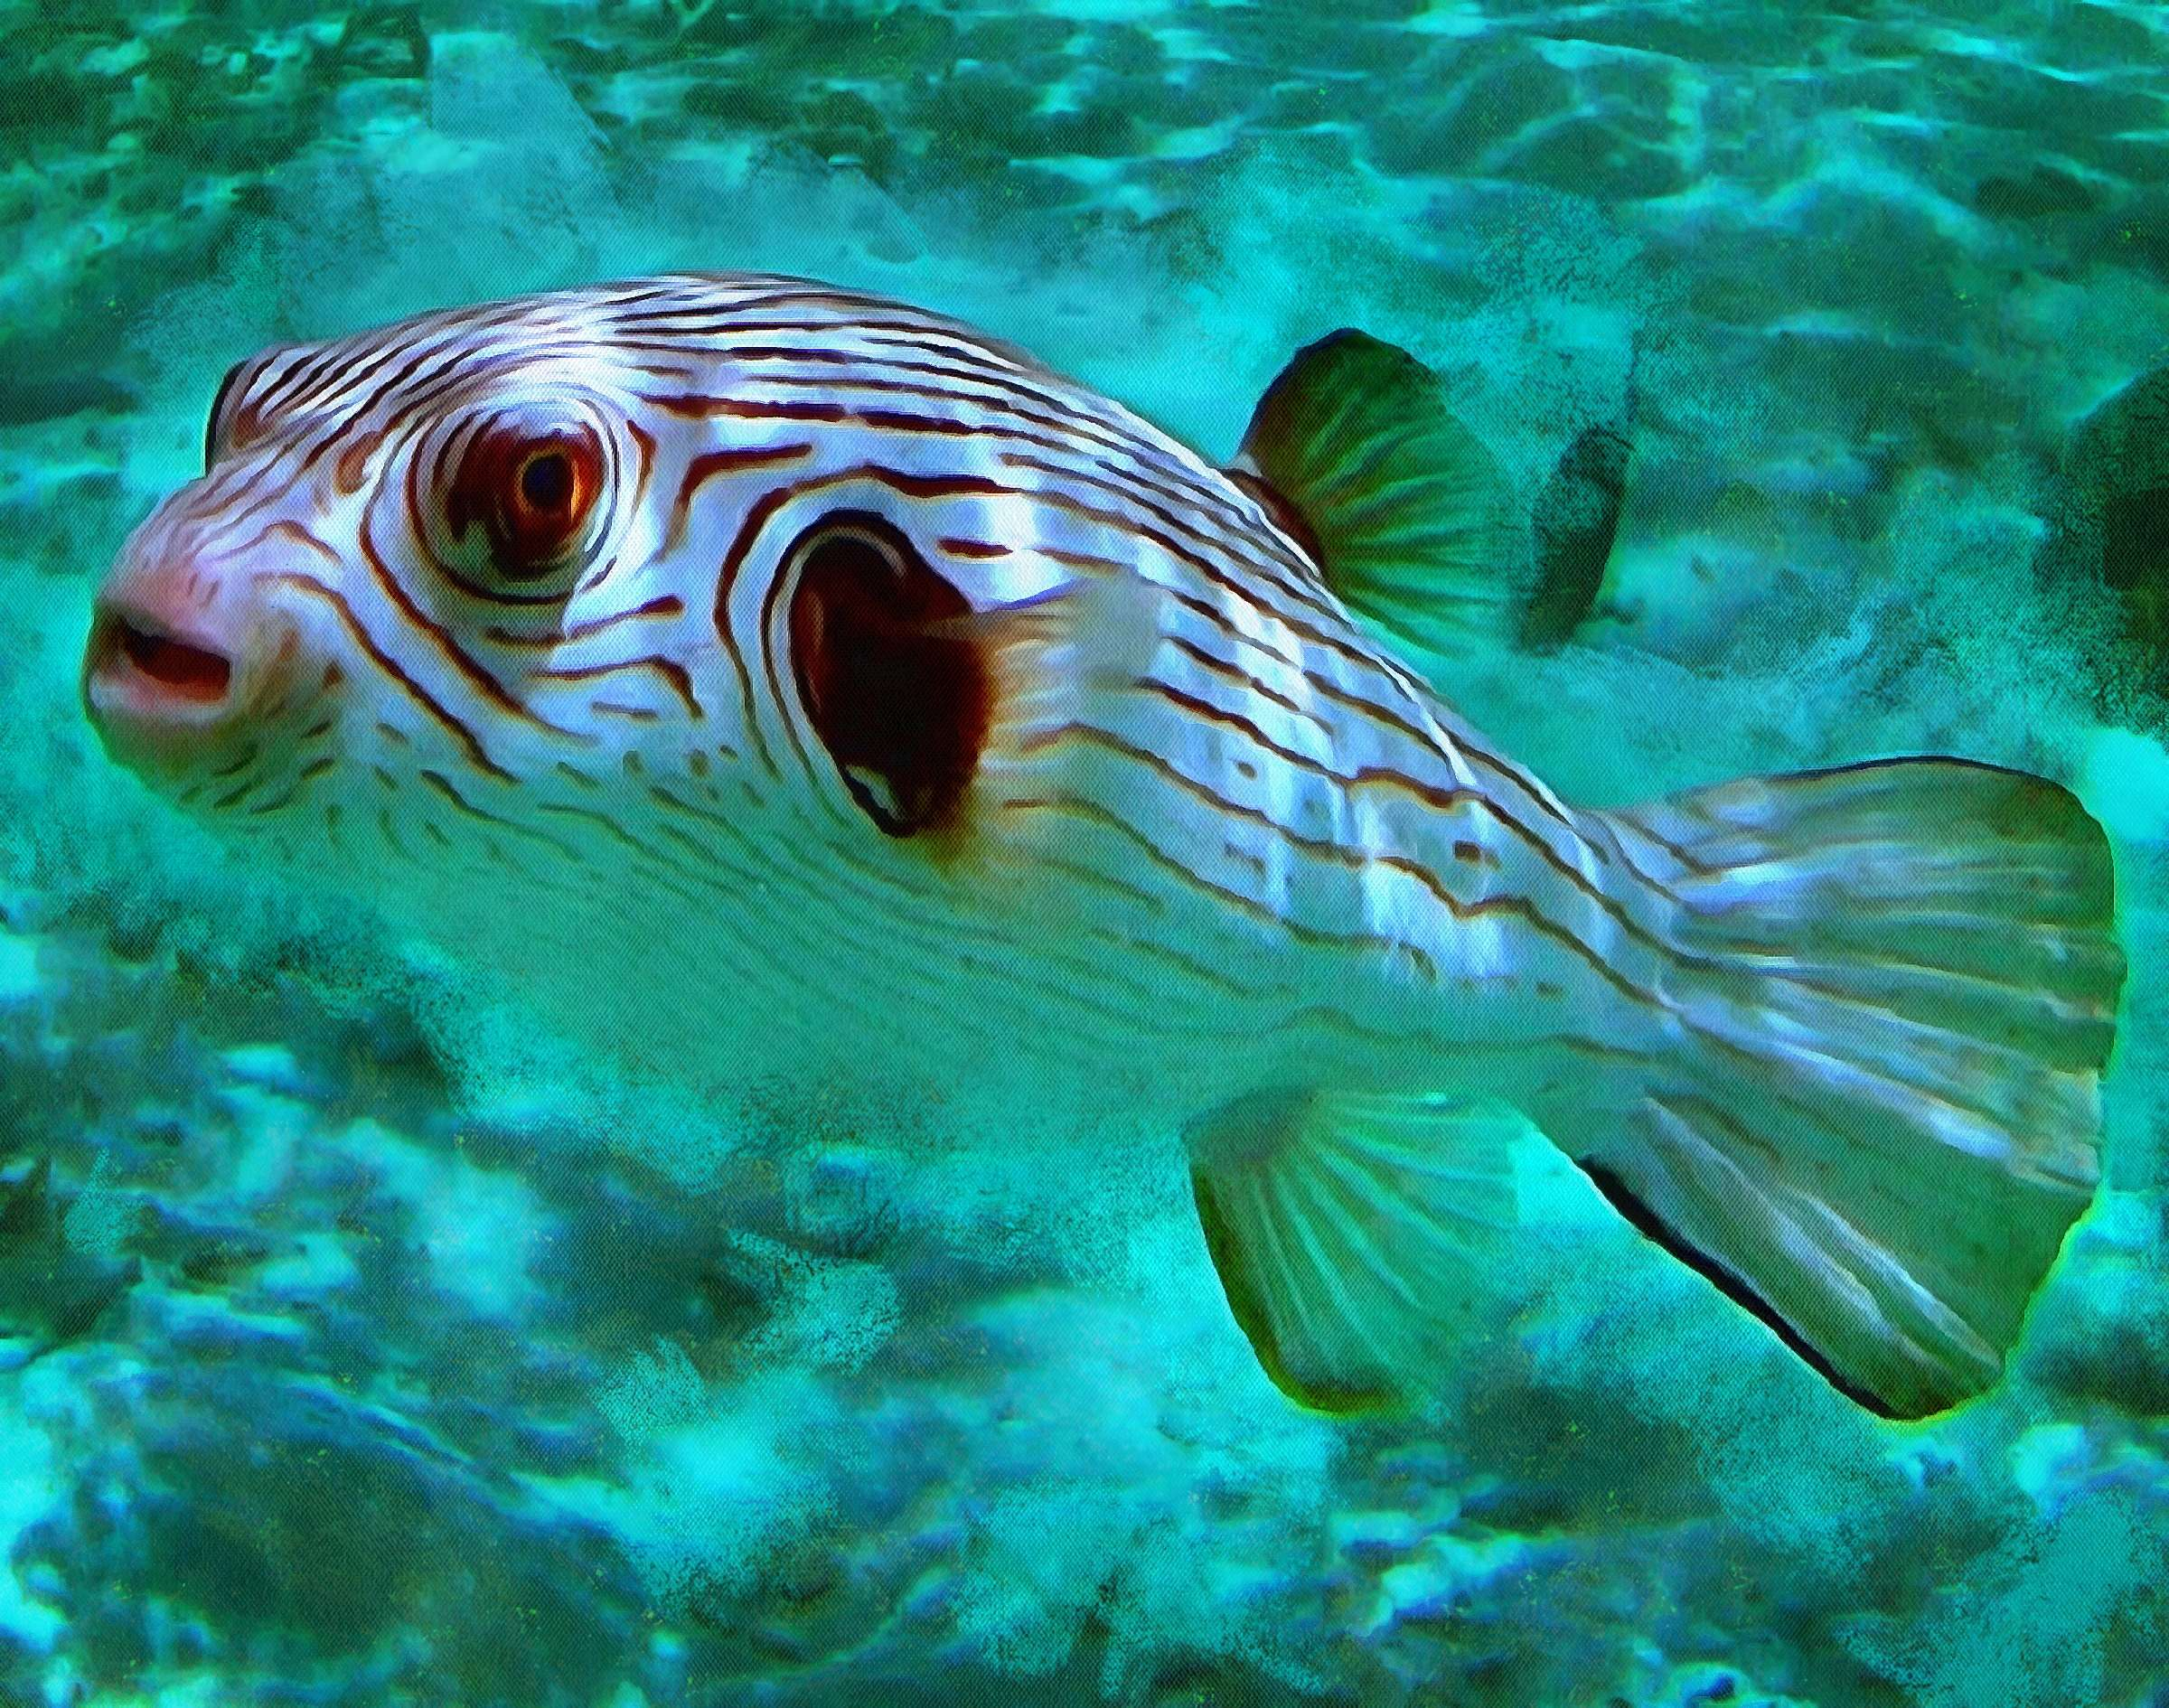 Puffer fish facts interesting facts about puffer fish for Interesting facts about fish